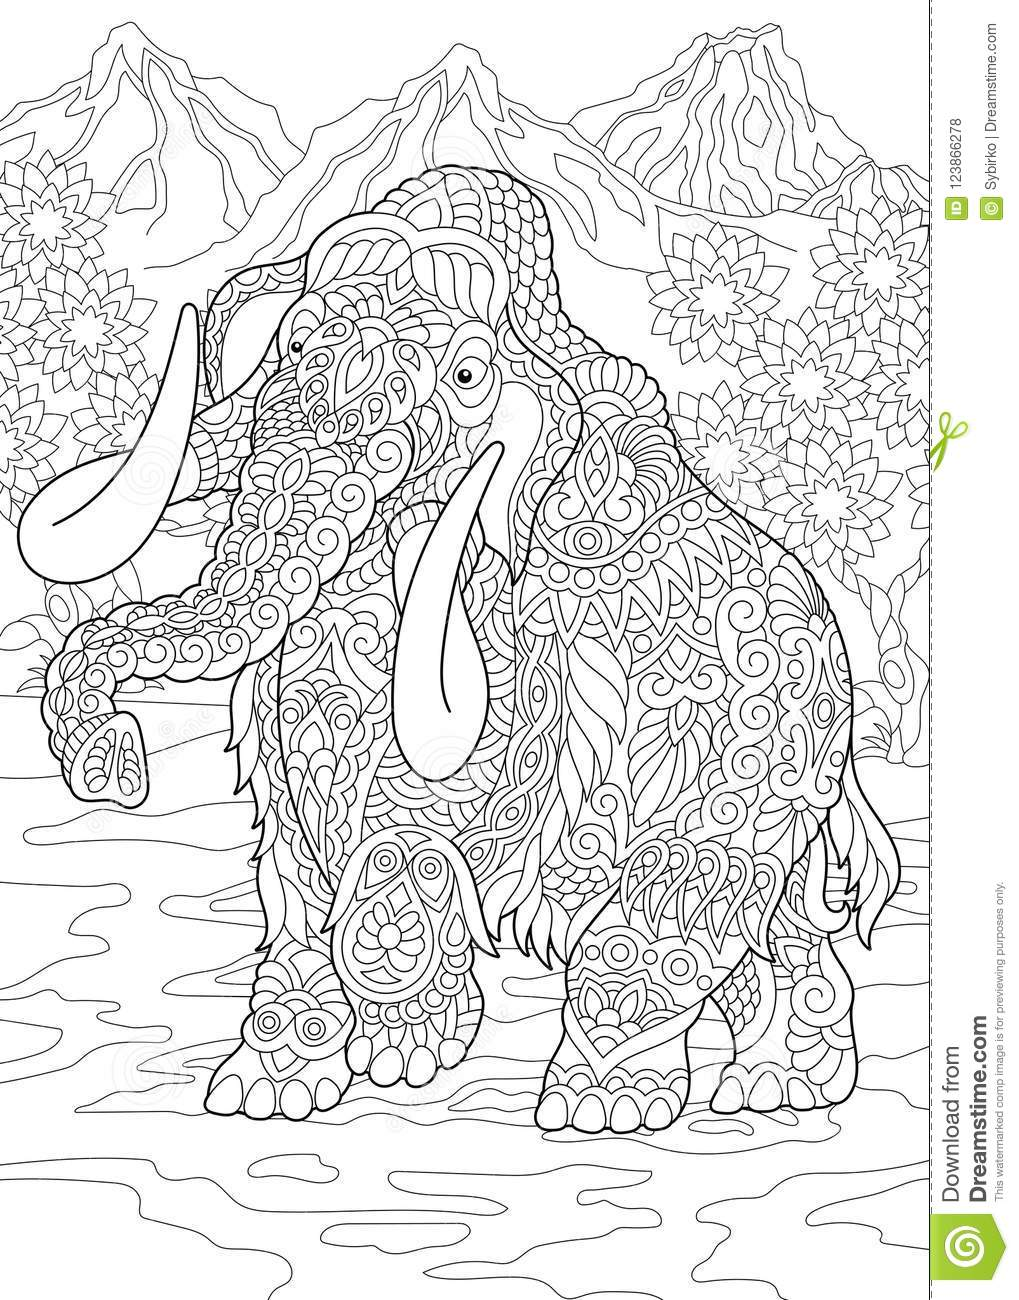 Brother Bear and Mammoth Coloring Page - ColoringBay | 1300x1019